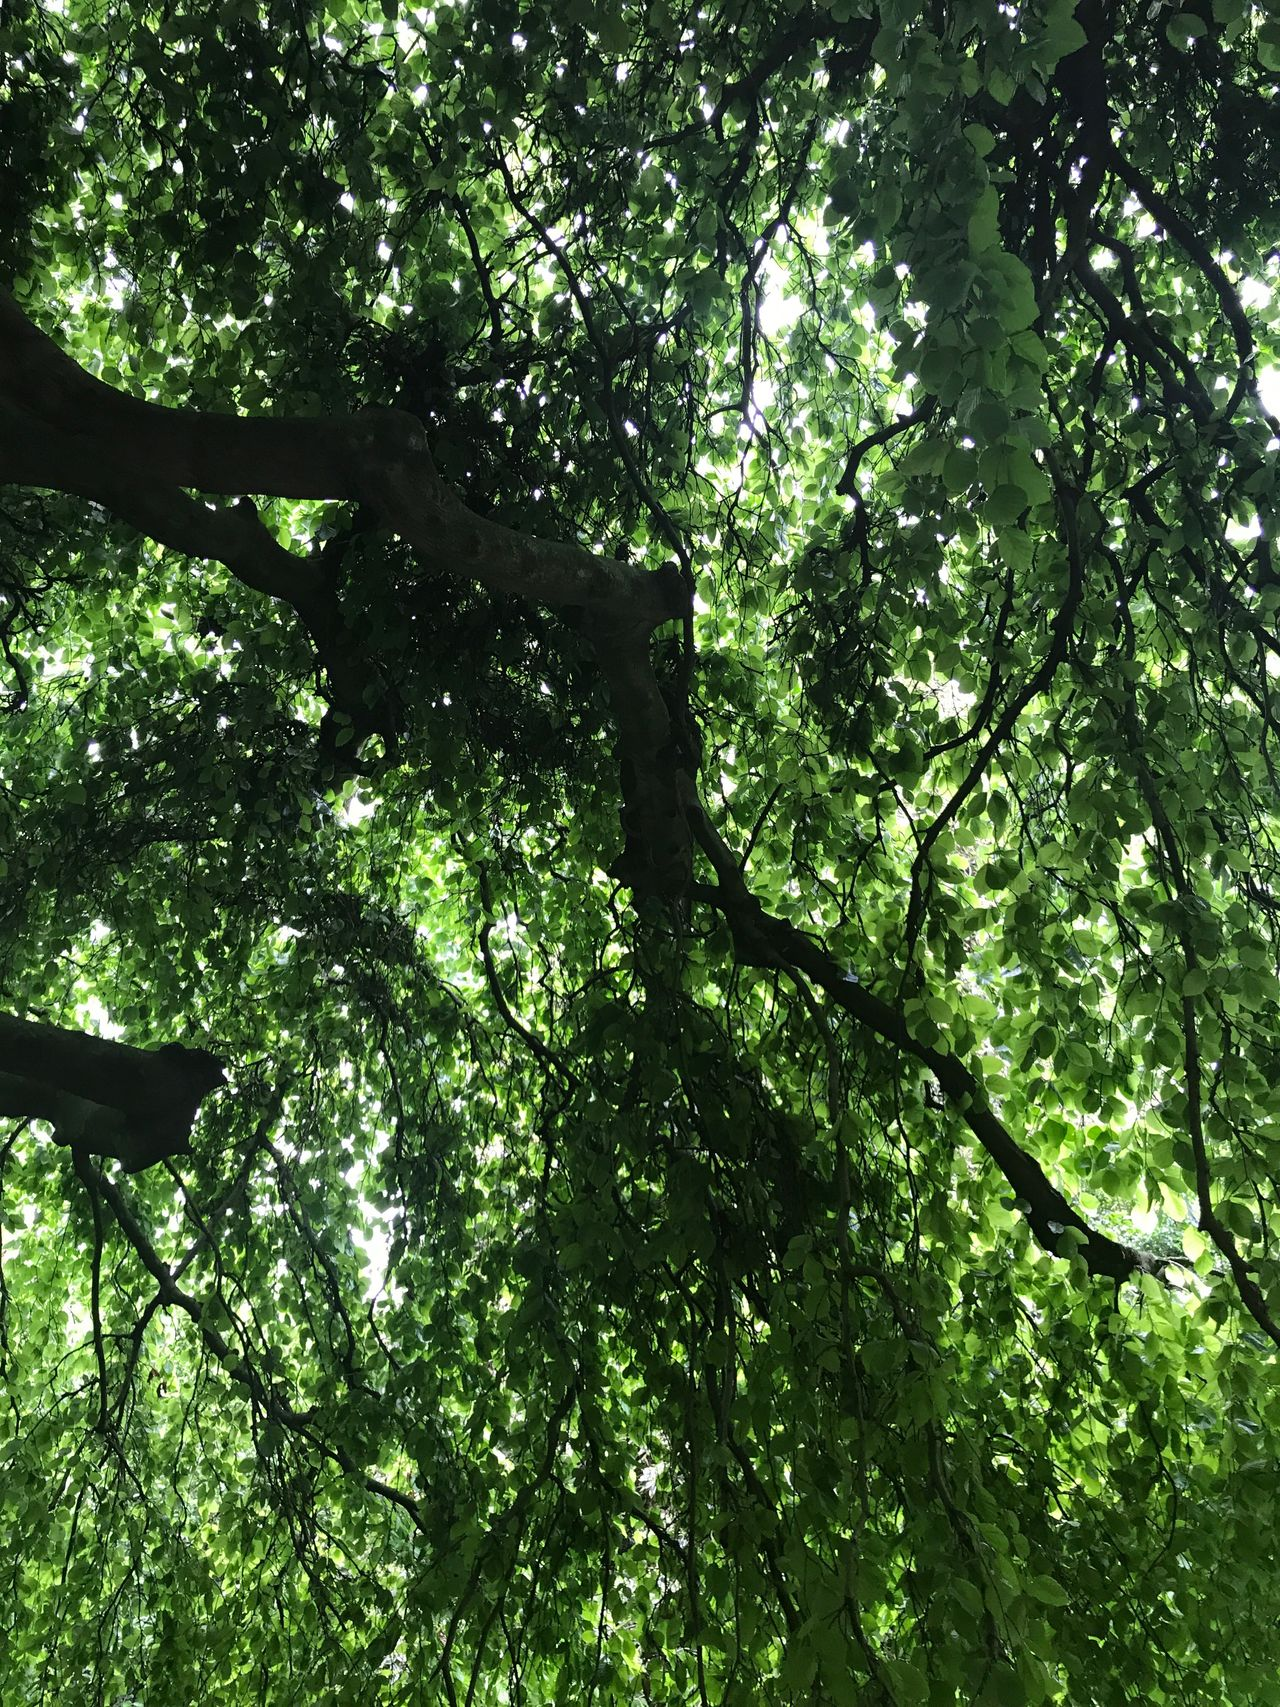 Tree Nature Growth Low Angle View Branch Forest Green Color Outdoors Day Beauty In Nature Tranquility No People Leaf